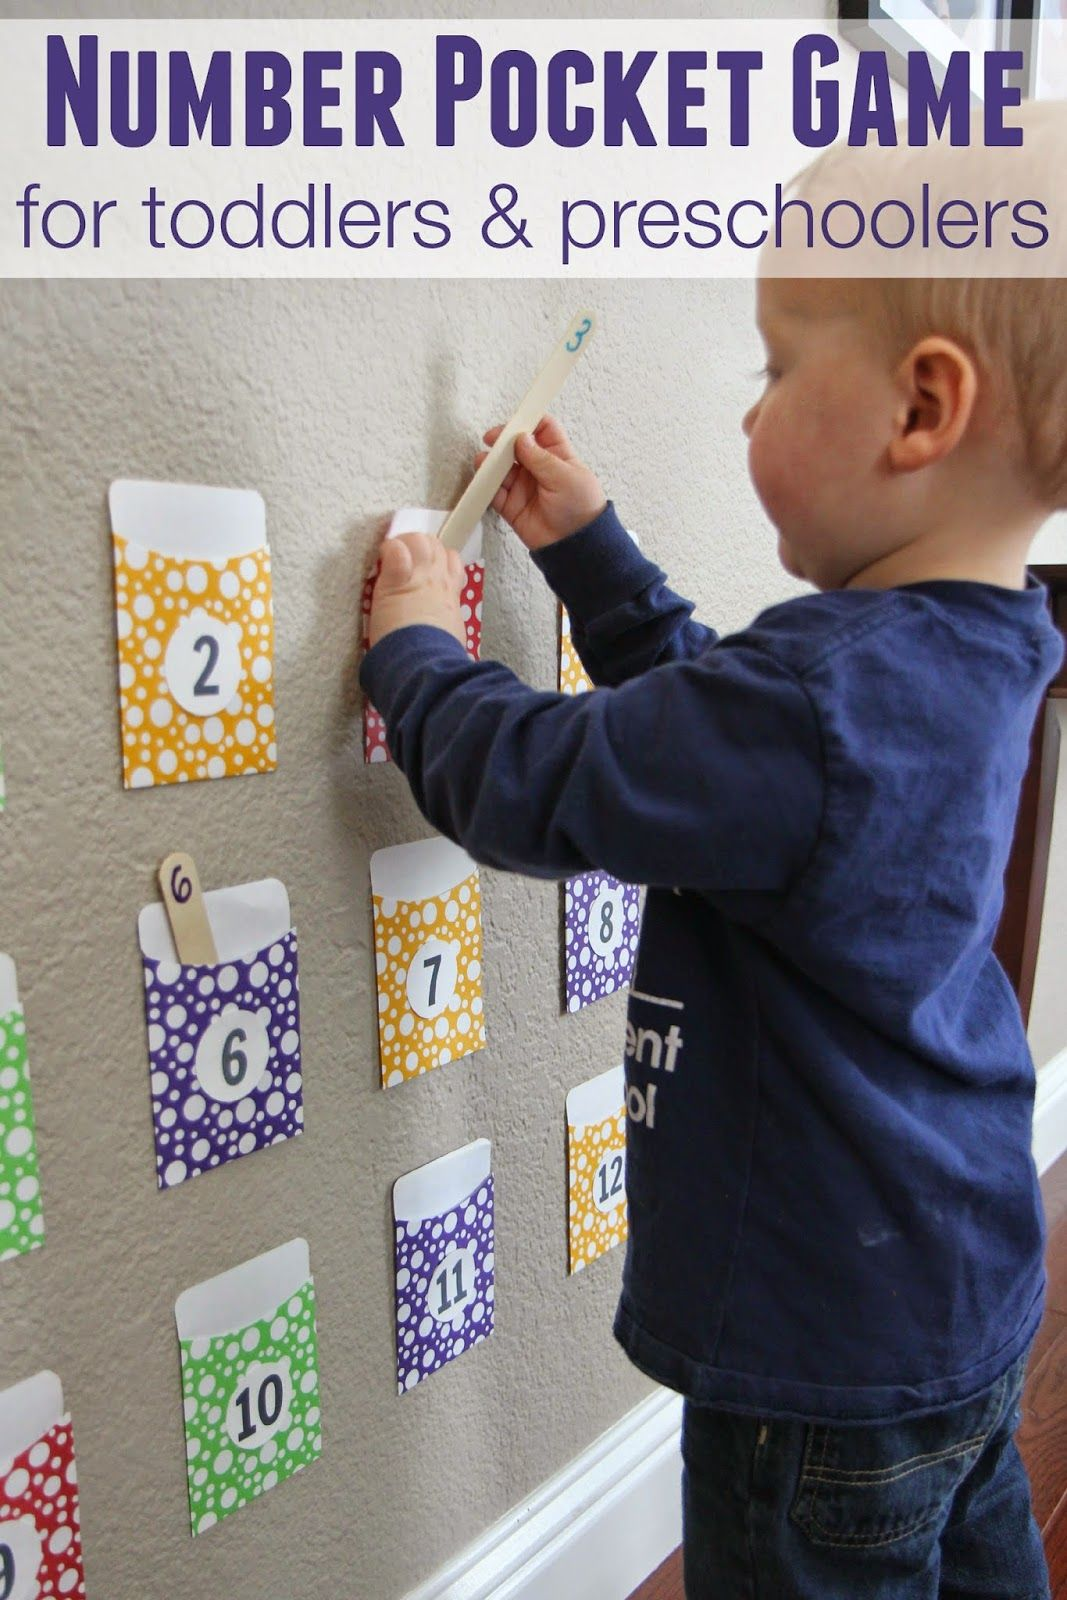 number pocket game for toddlers and preschoolers gaming